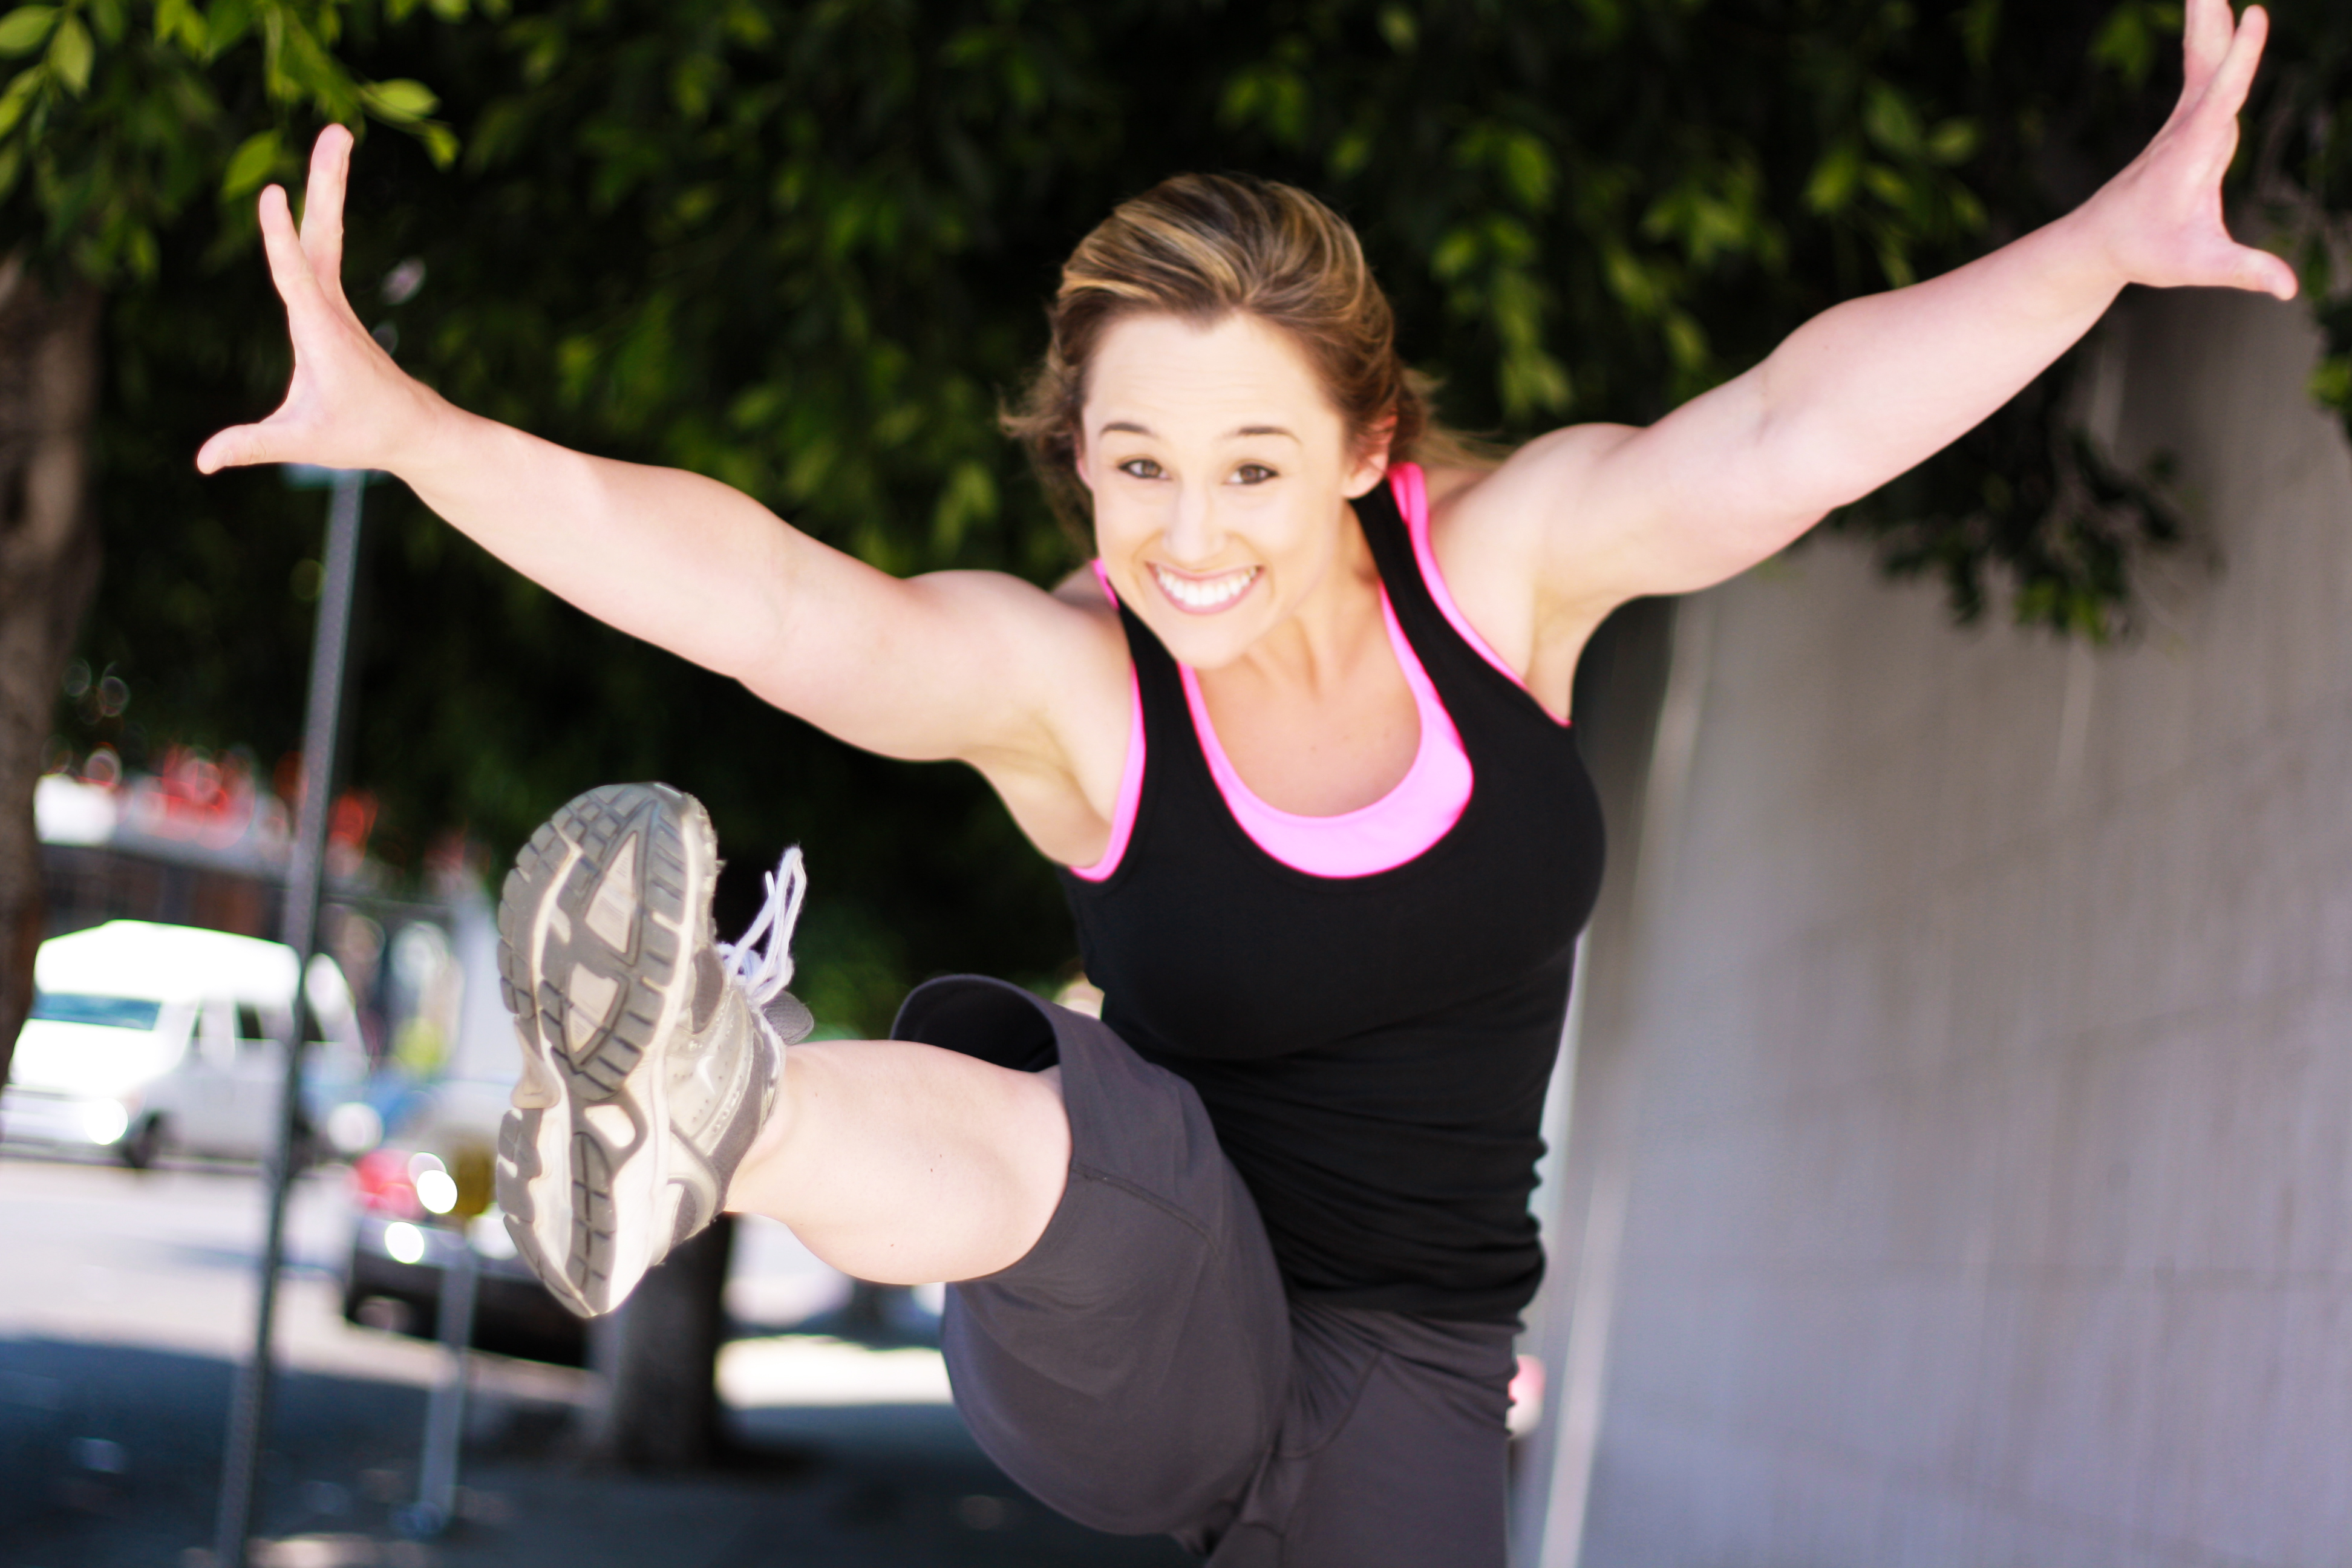 Personal Training, Group Exercise, Sherman Oaks, Los Angeles, CA, Personal Trainer, Trainer, LA, Best, Train